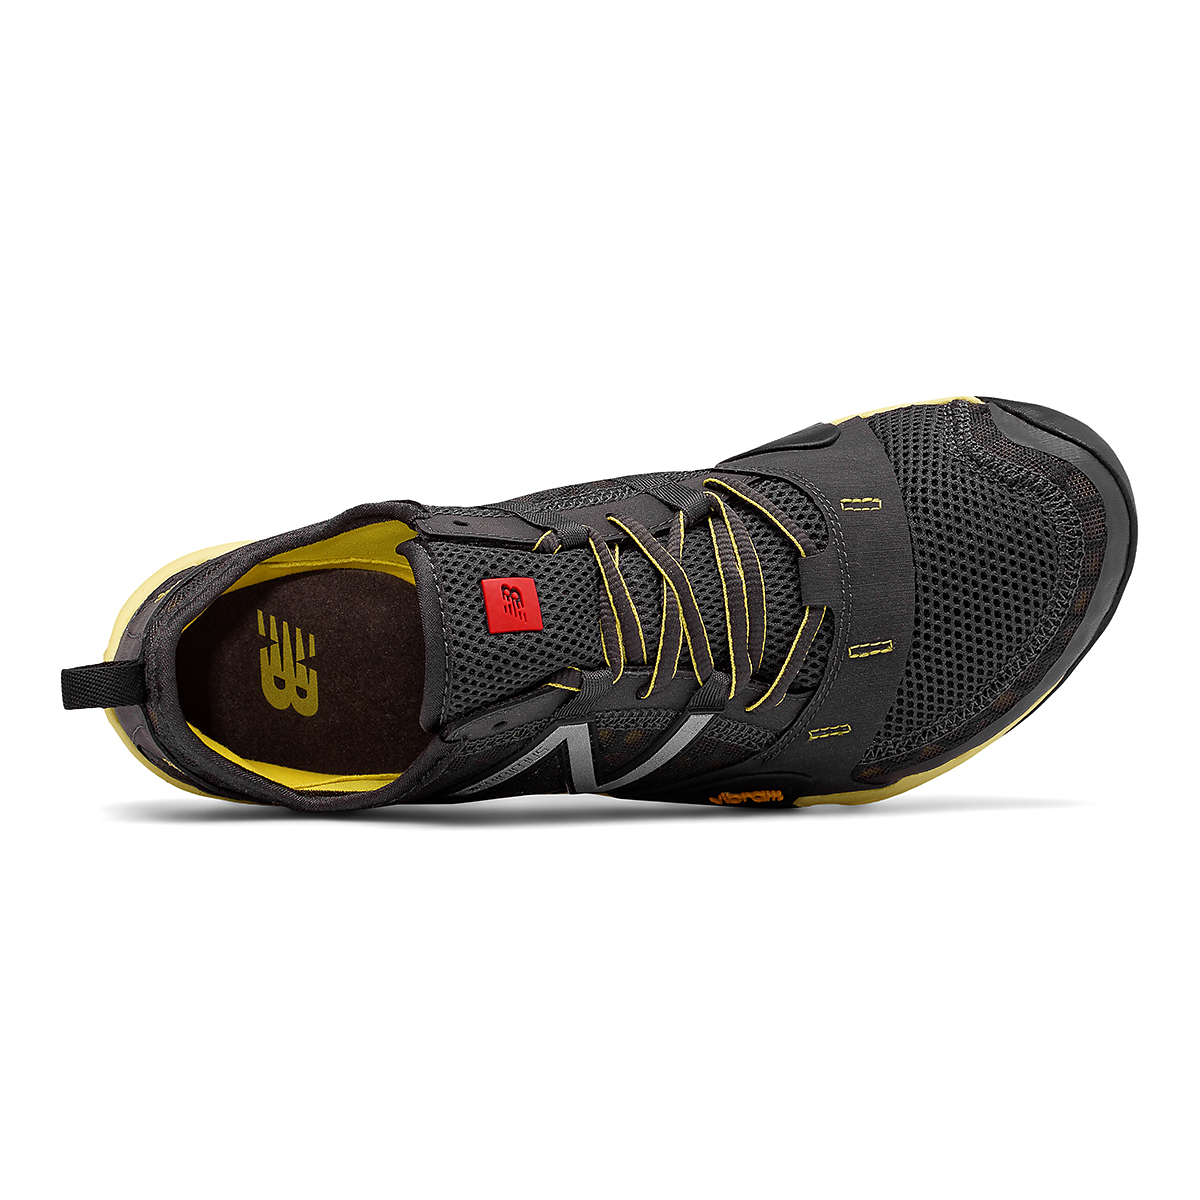 Men's New Balance Minimus T10V1 Trail Running Shoe - Color: Grey/Yellow - Size: 5 - Width: Wide, Grey/Yellow, large, image 3